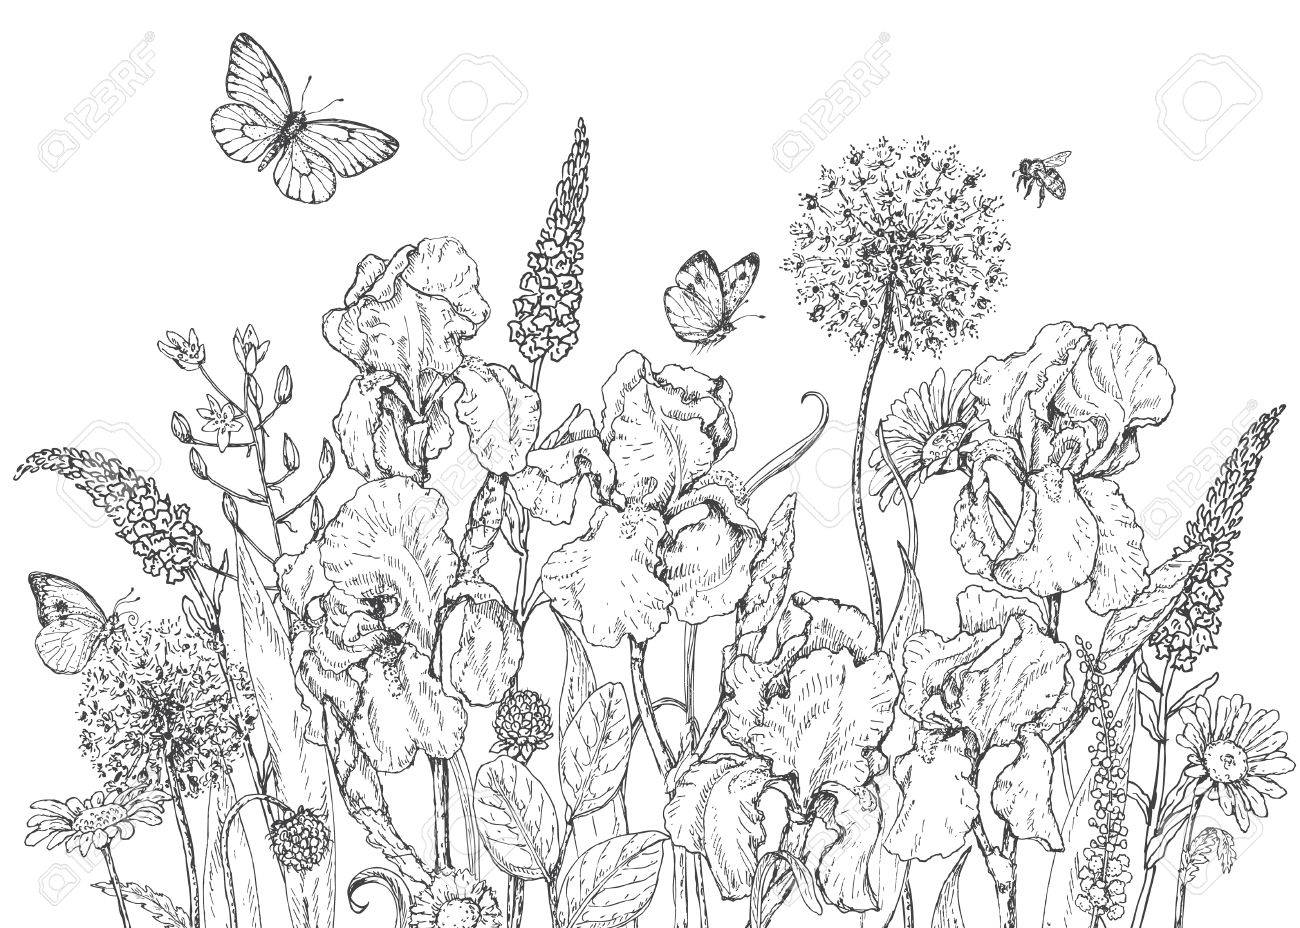 Hand drawn line illustration with iris, wildflowers and insects. Black and white doodle wild flowers, bees and butterflies. Monochrome floral elements. Coloring page. Vector sketch. - 58793779